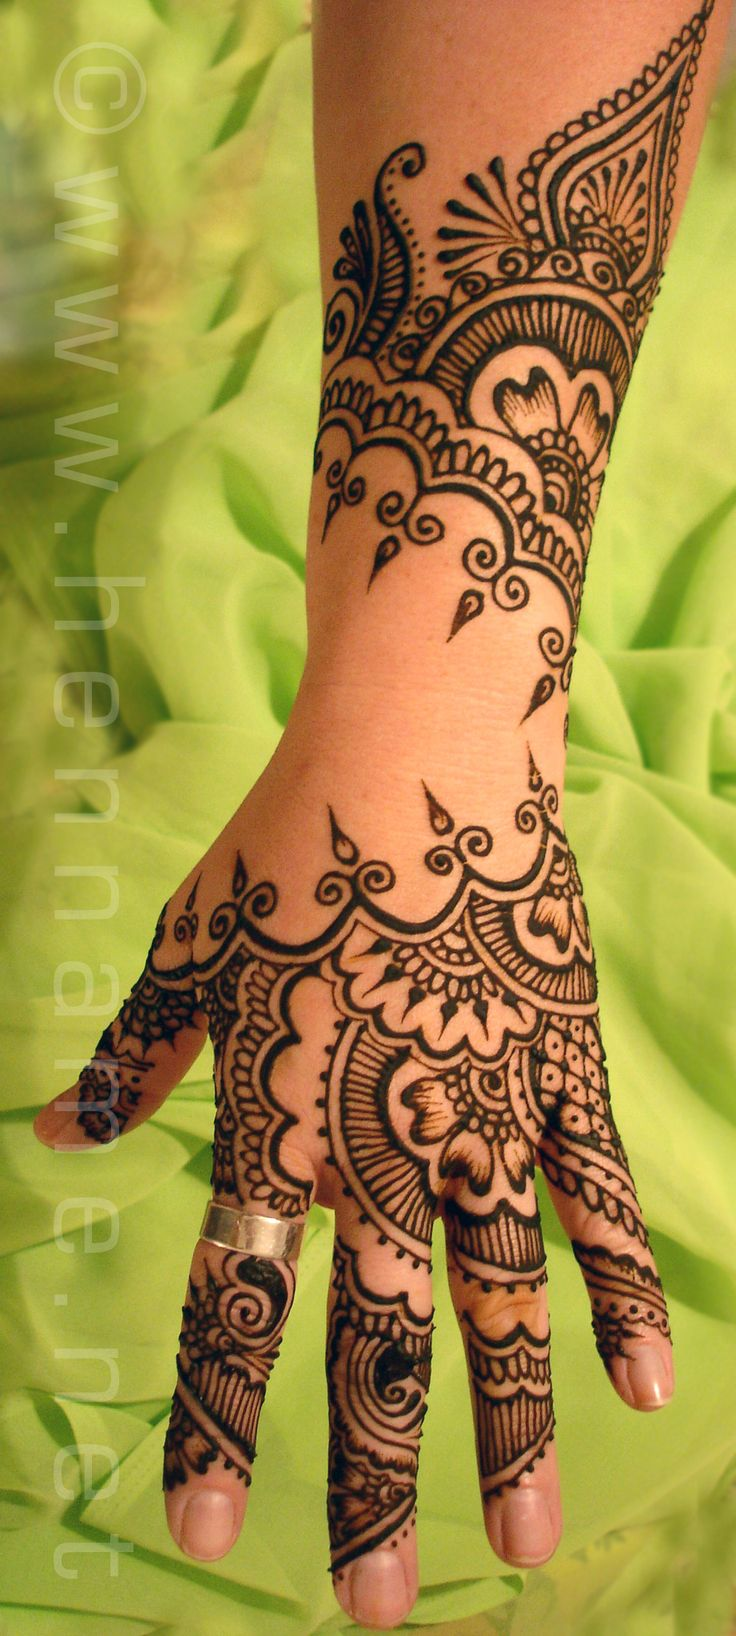 Modern mehndi design uses empty space to make the design stand out. Great for bridal mehndi or for guests at a sangeet / pre-wedding event at your Indian wedding